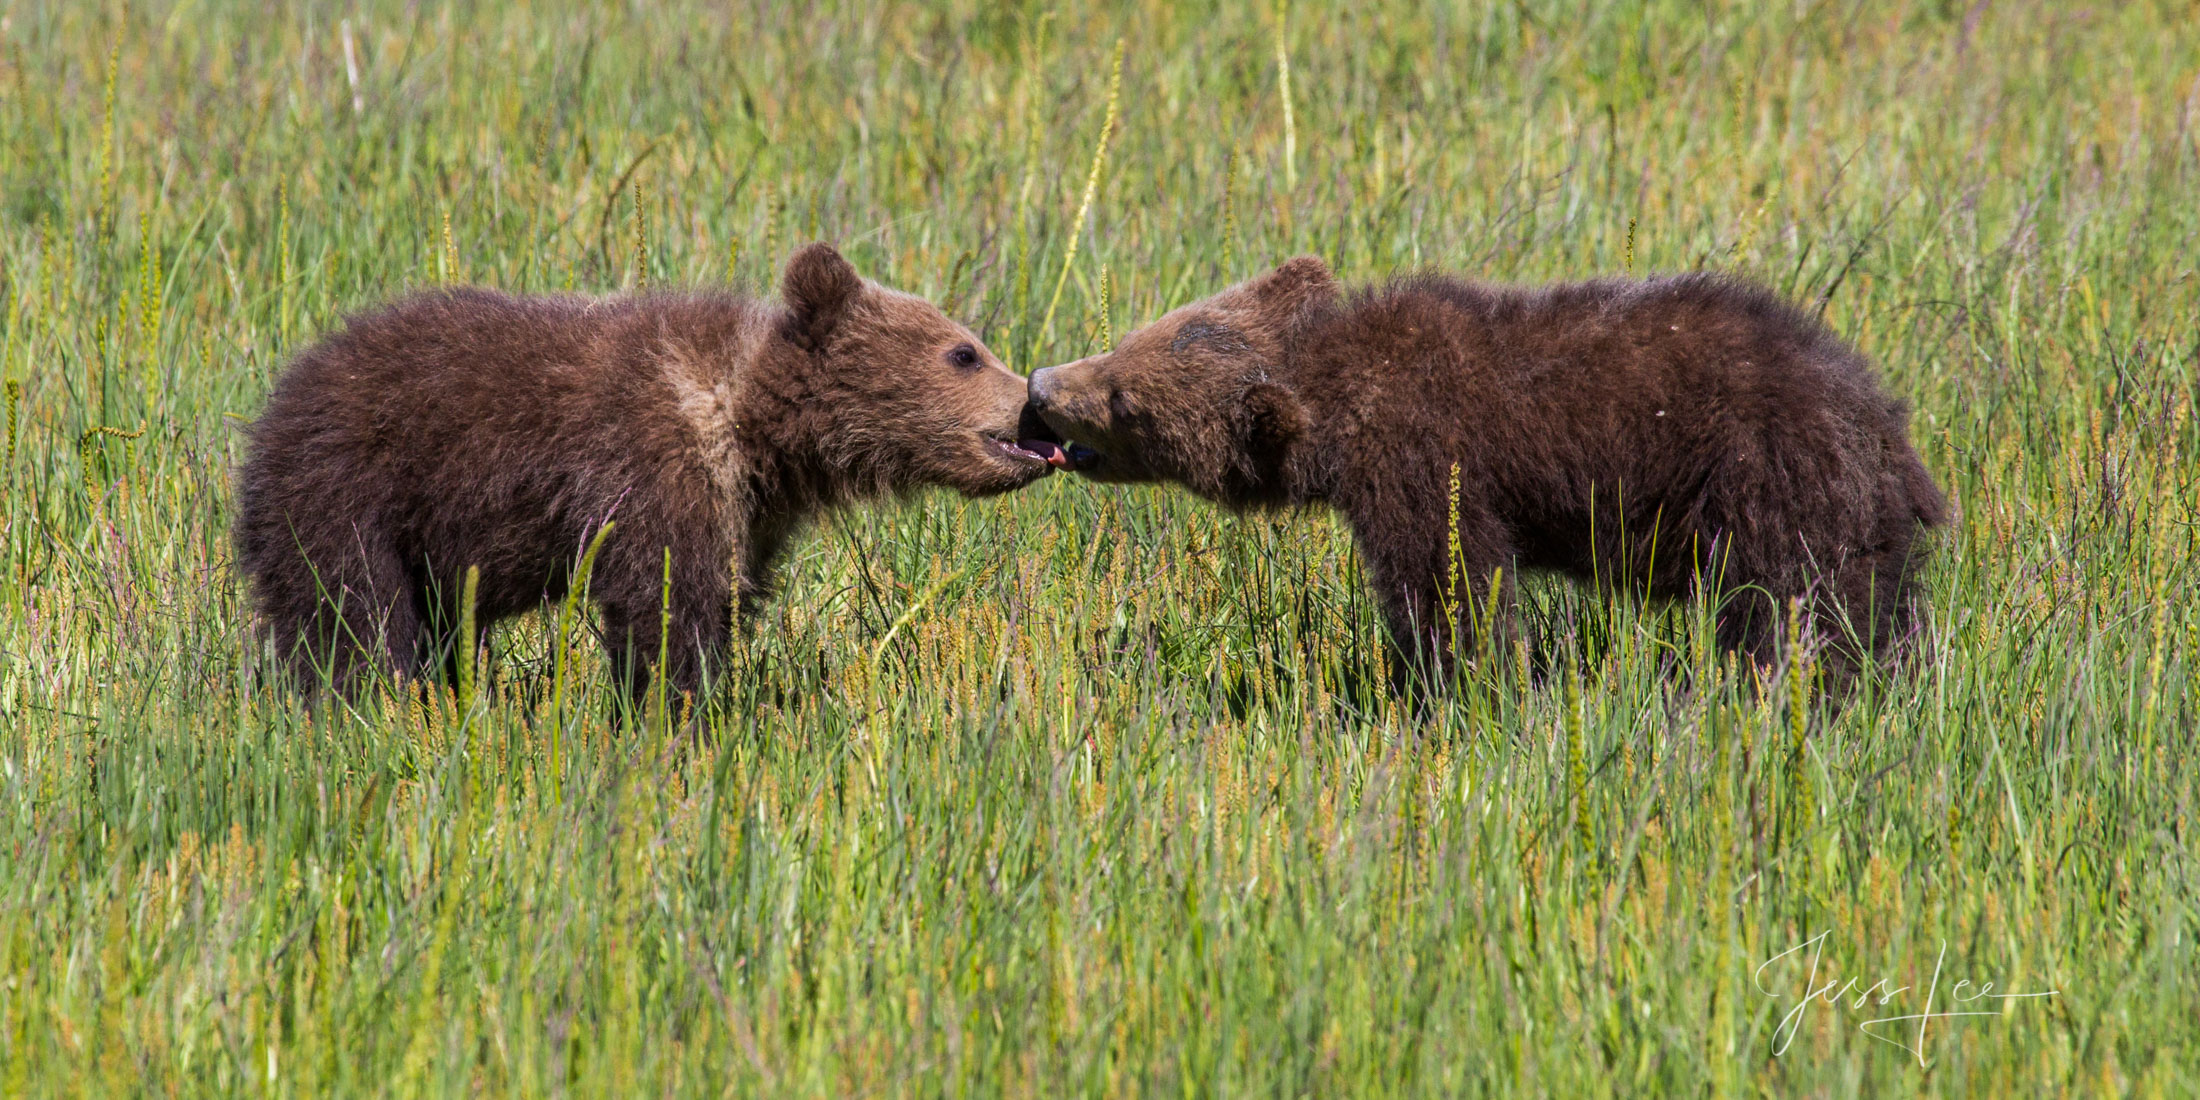 Enjoy the thrill of owning  Bear Photo # 154 from Jess Lee's Alaska Grizzly Bear limited edition photography print gallery....